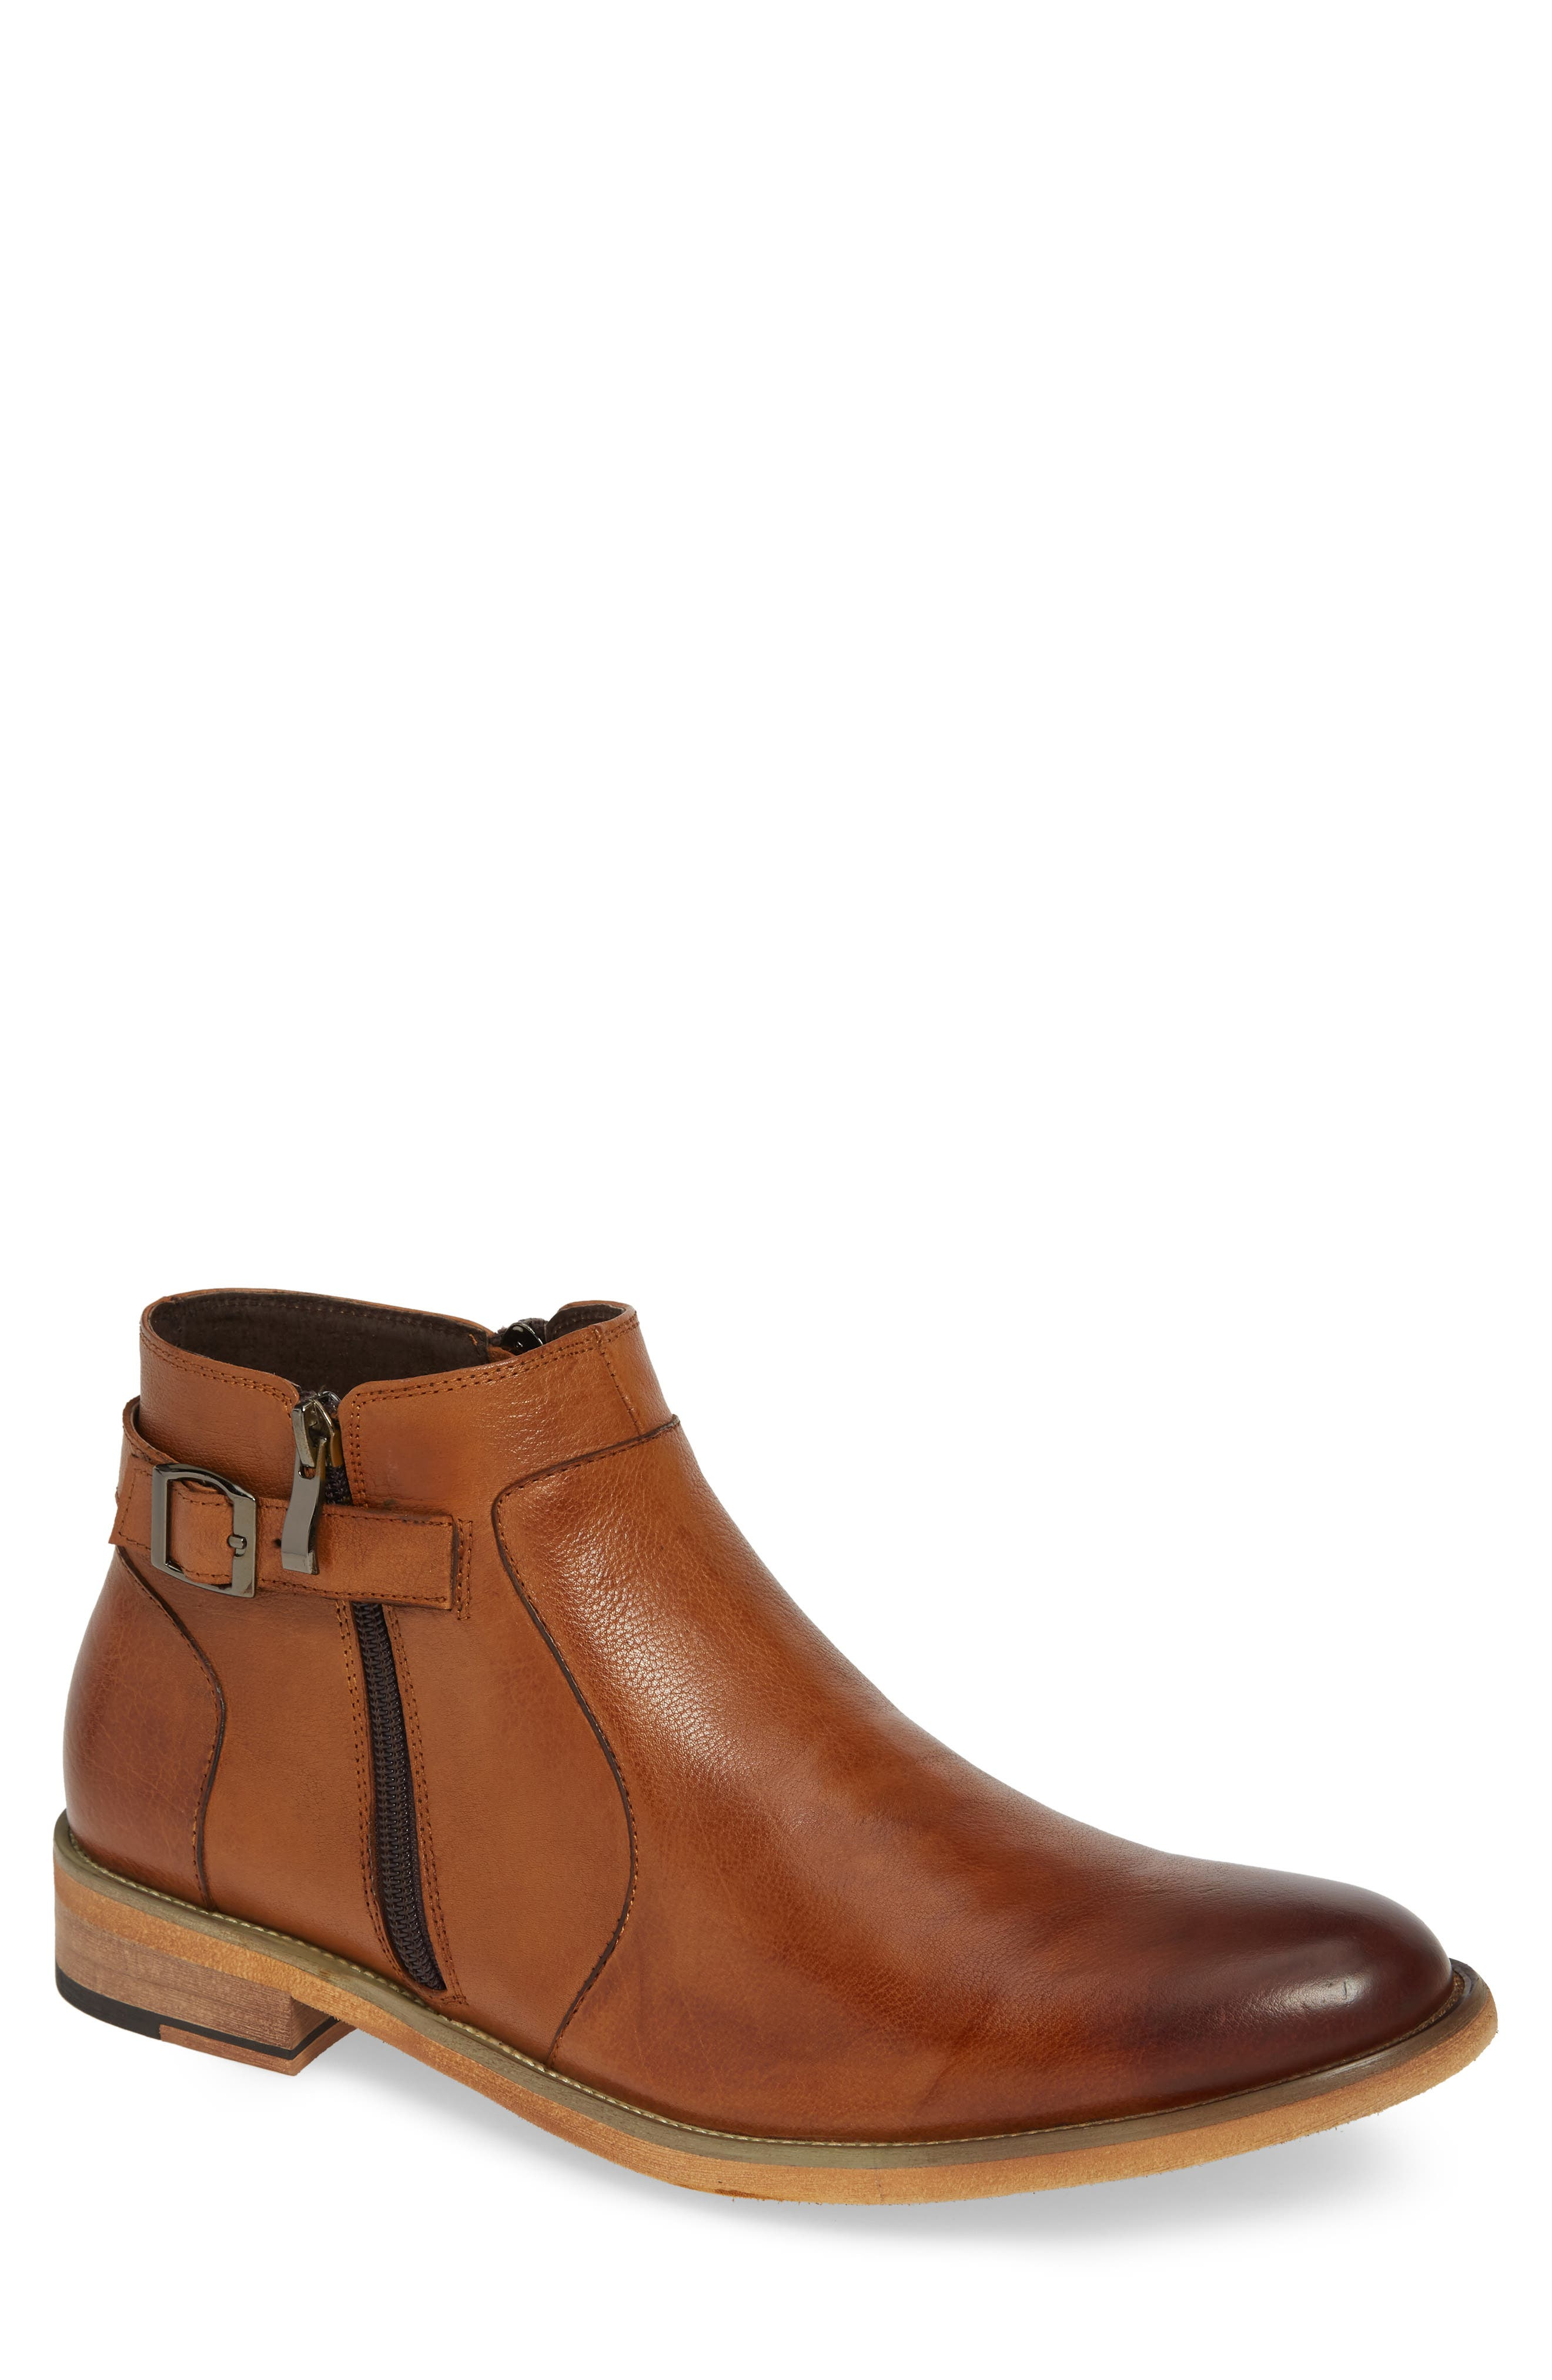 English Laundry Teddy Zip Boot- Brown